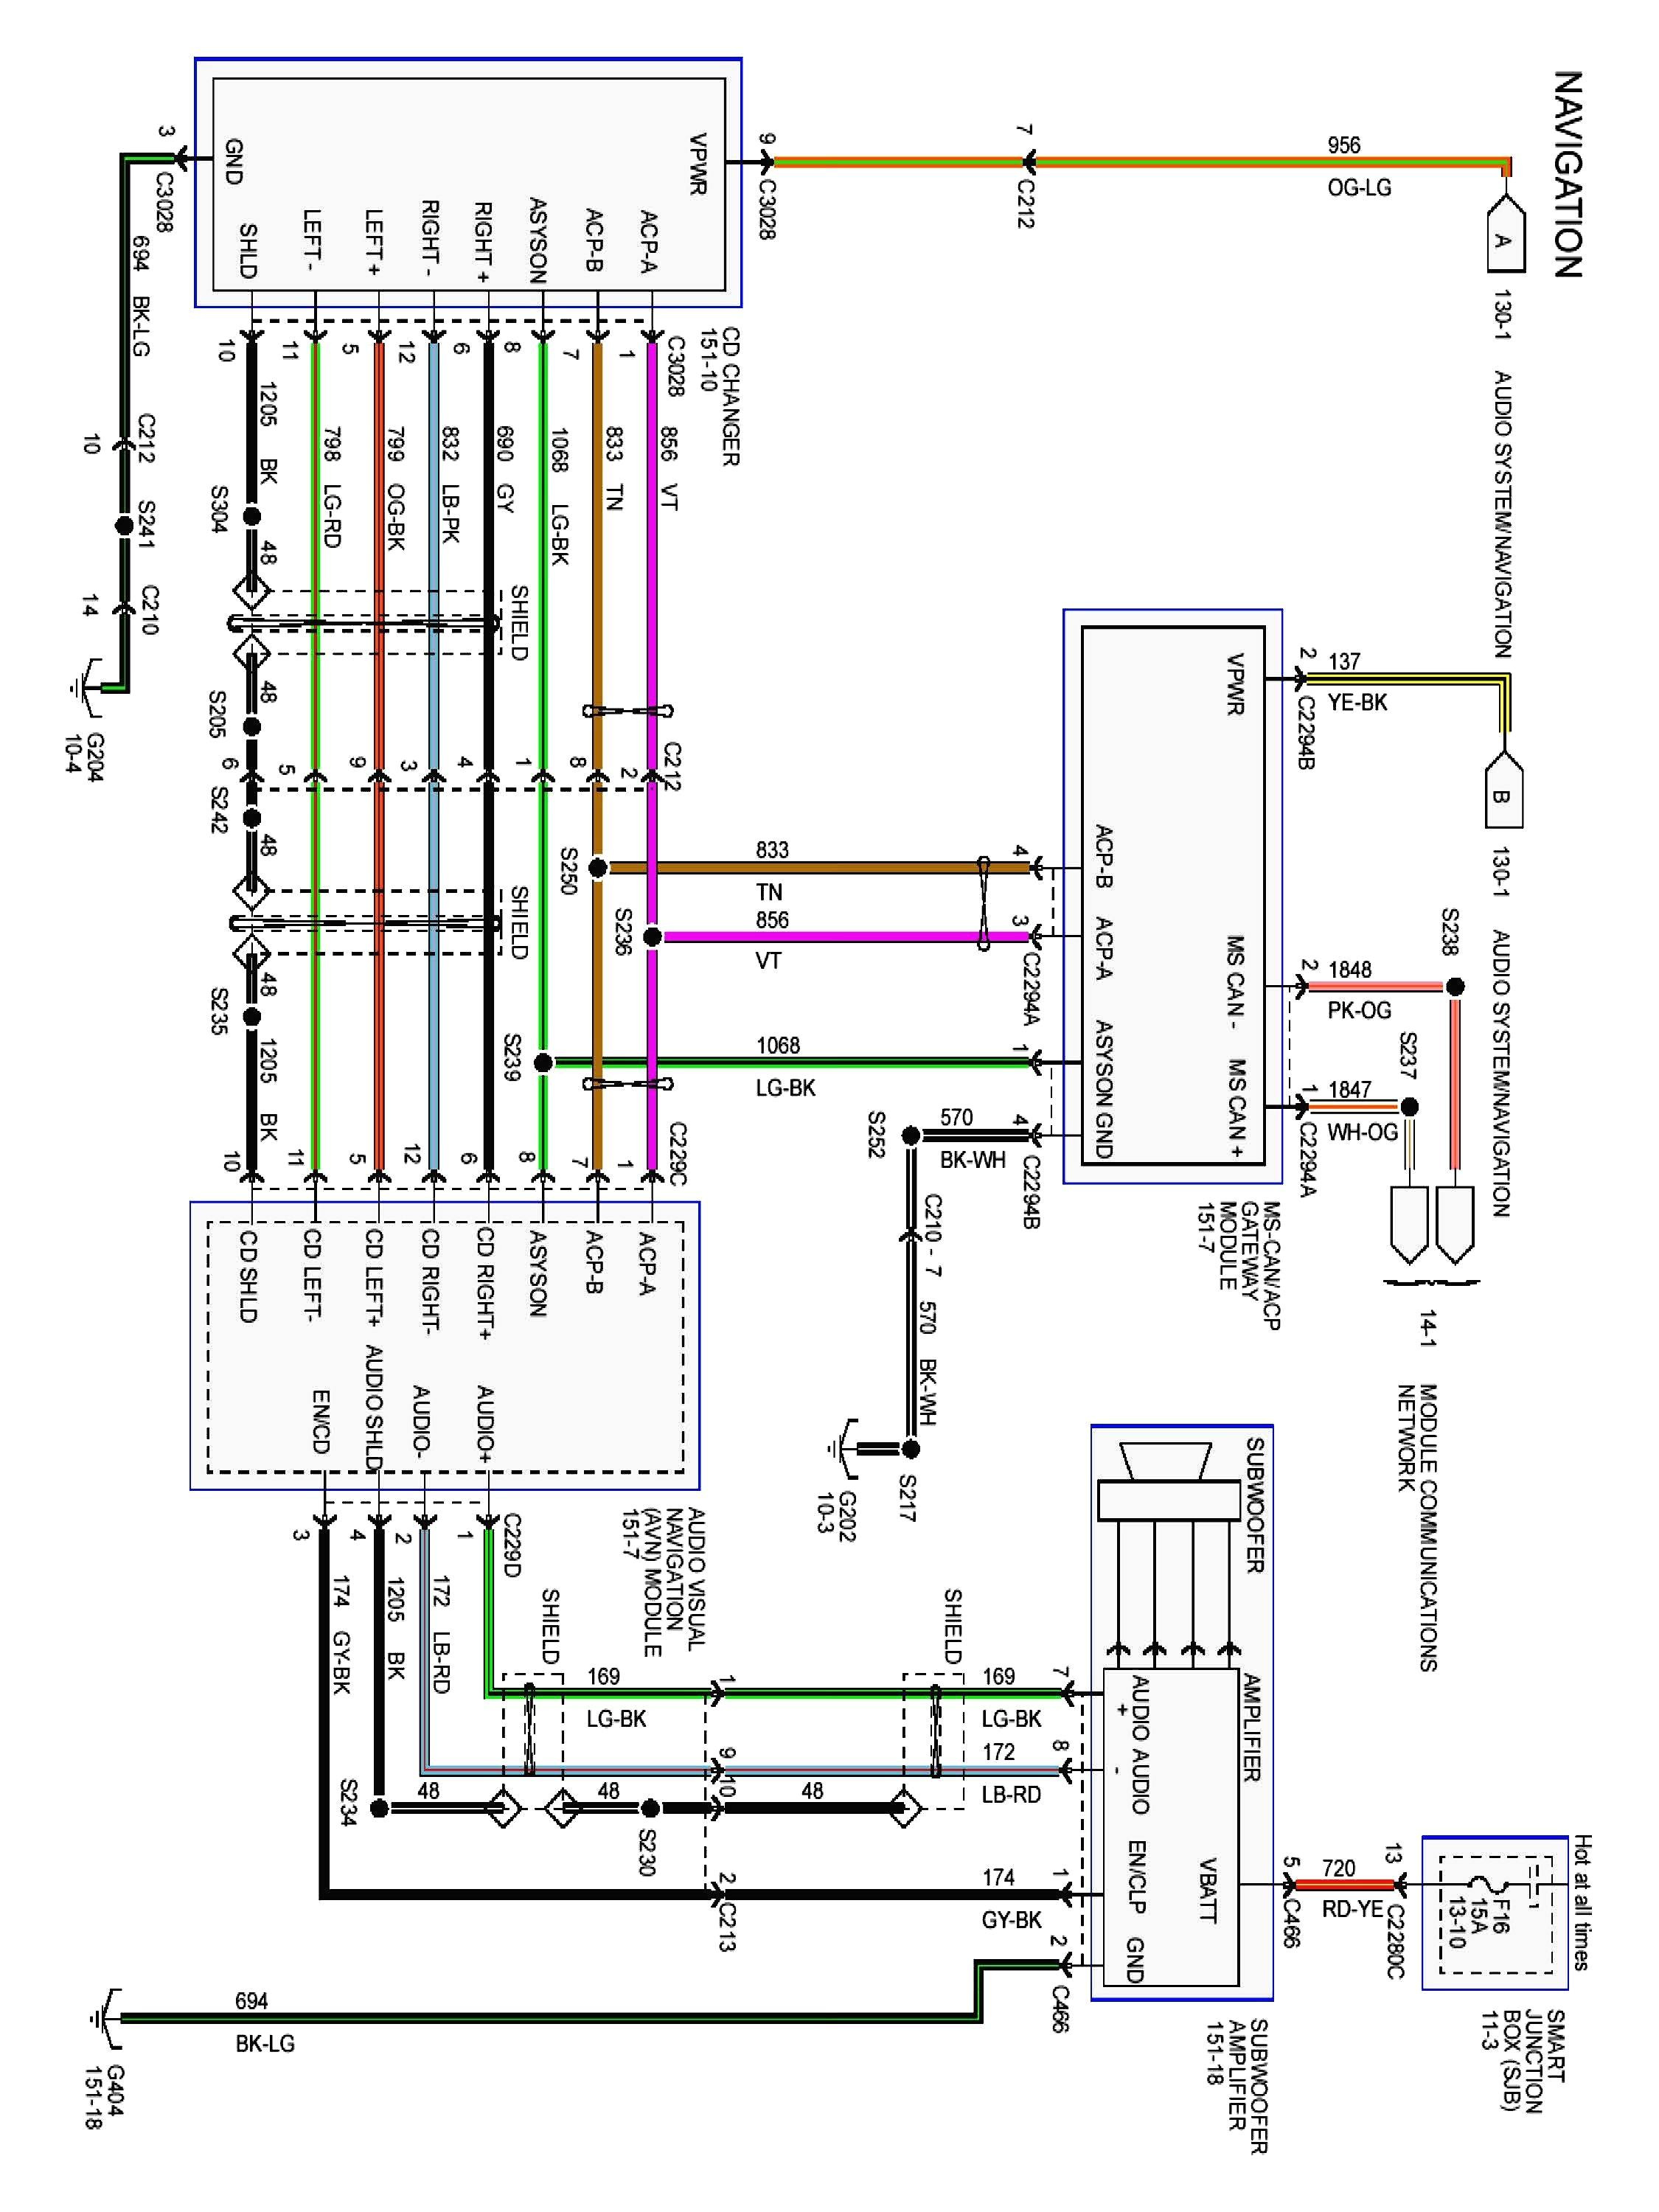 Ford Pcm Wiring Diagram | outgive-electio Wiring Diagram Storage -  outgive-electio.marbast.euMarbast